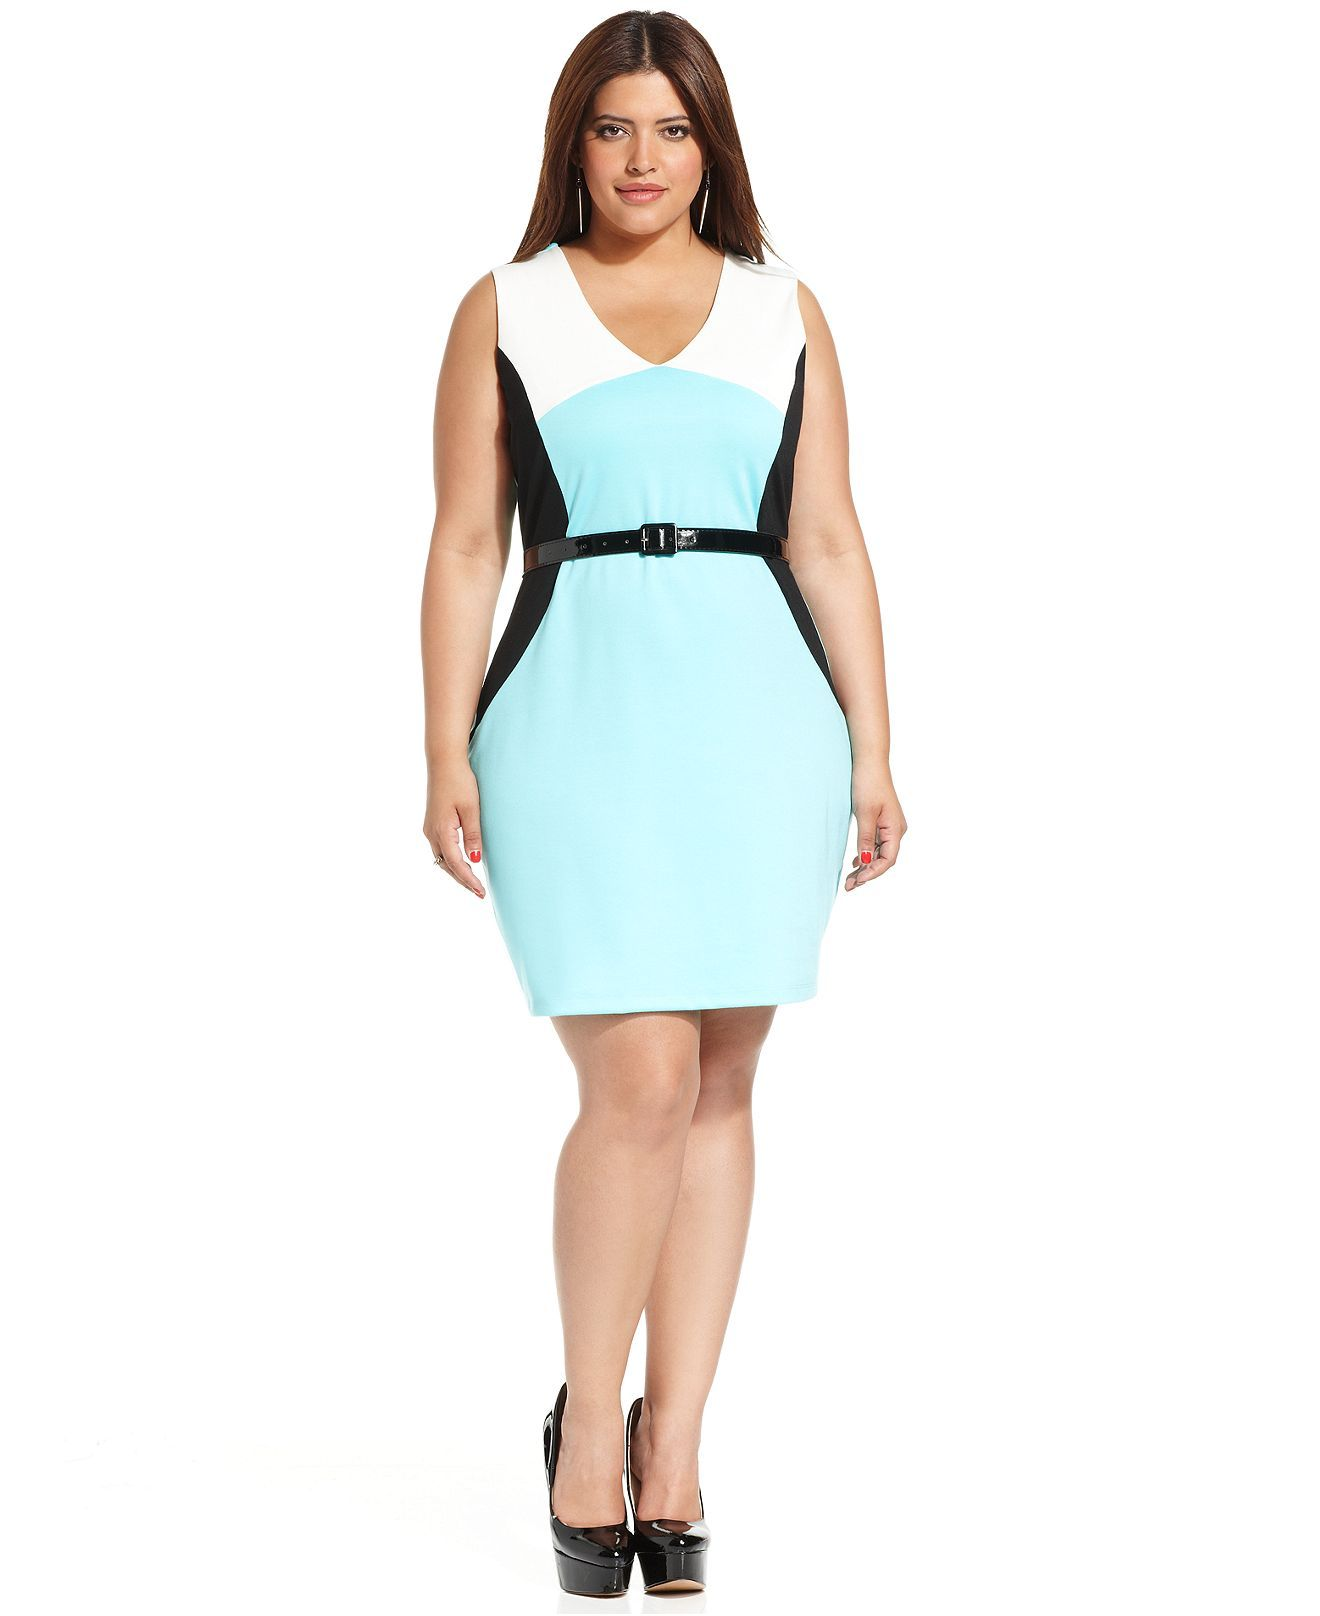 ING Plus Size Dress, Sleeveless Colorblock Belted - Plus Size ...